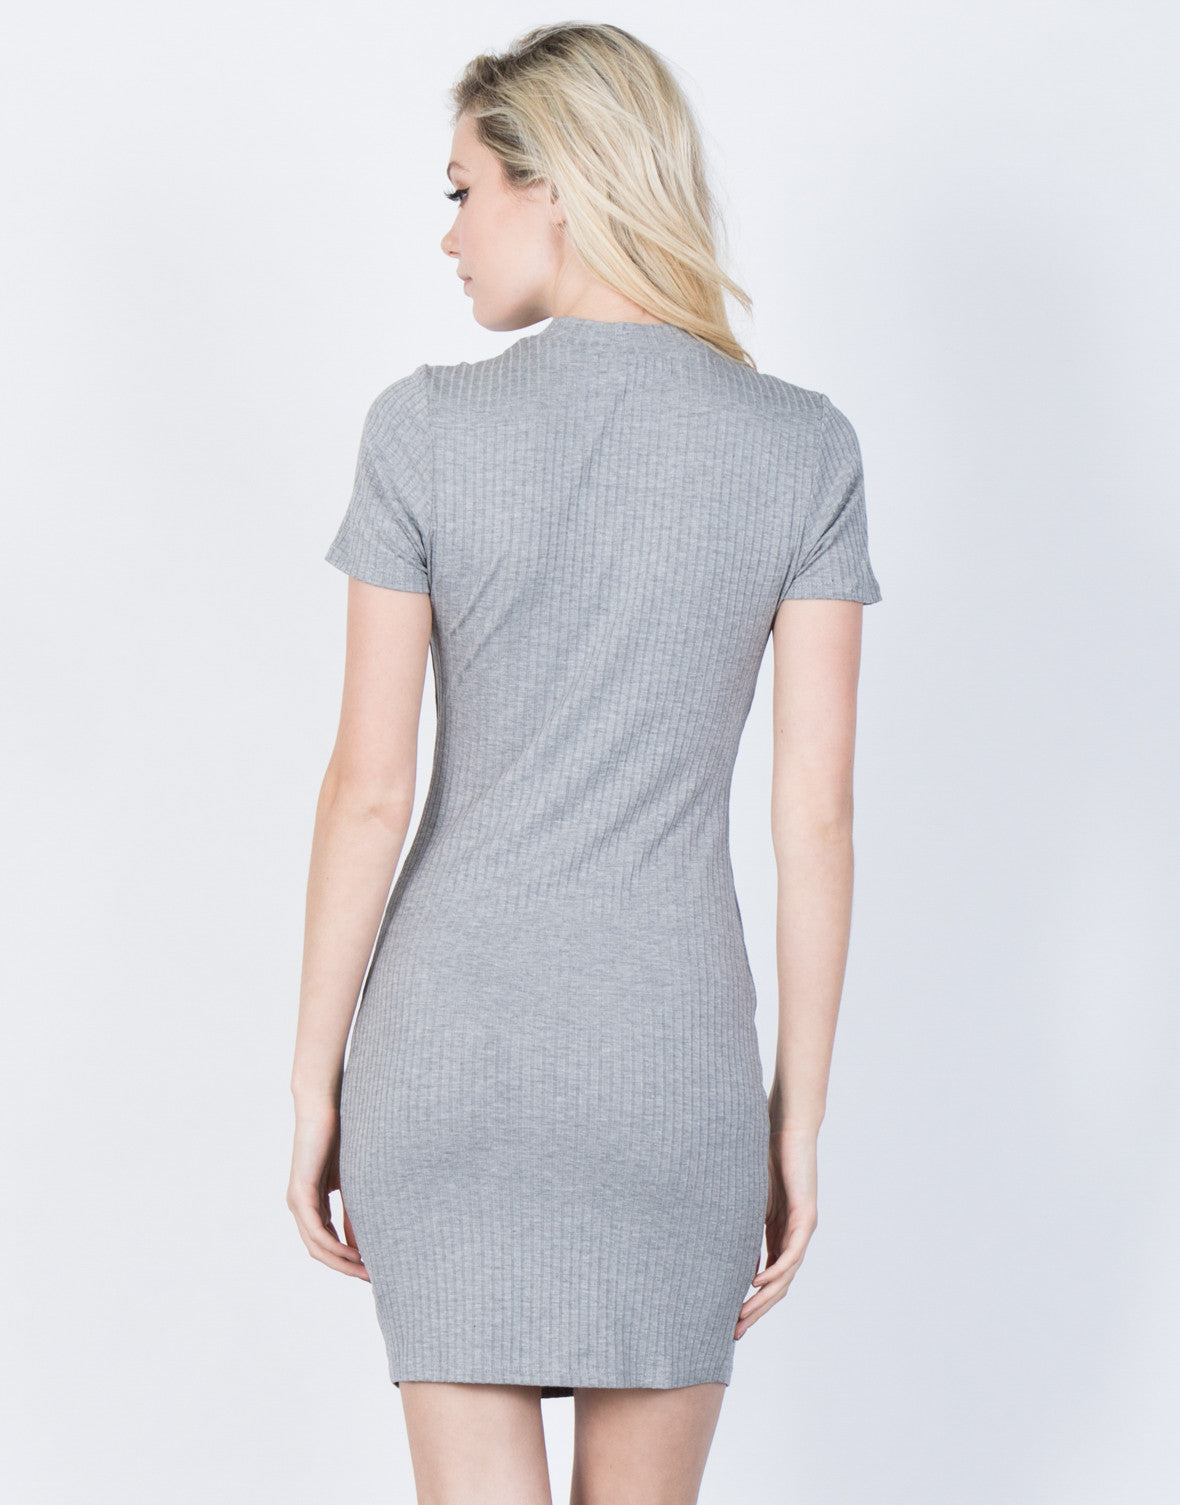 Back View of Perfect Fit Bodycon Dress